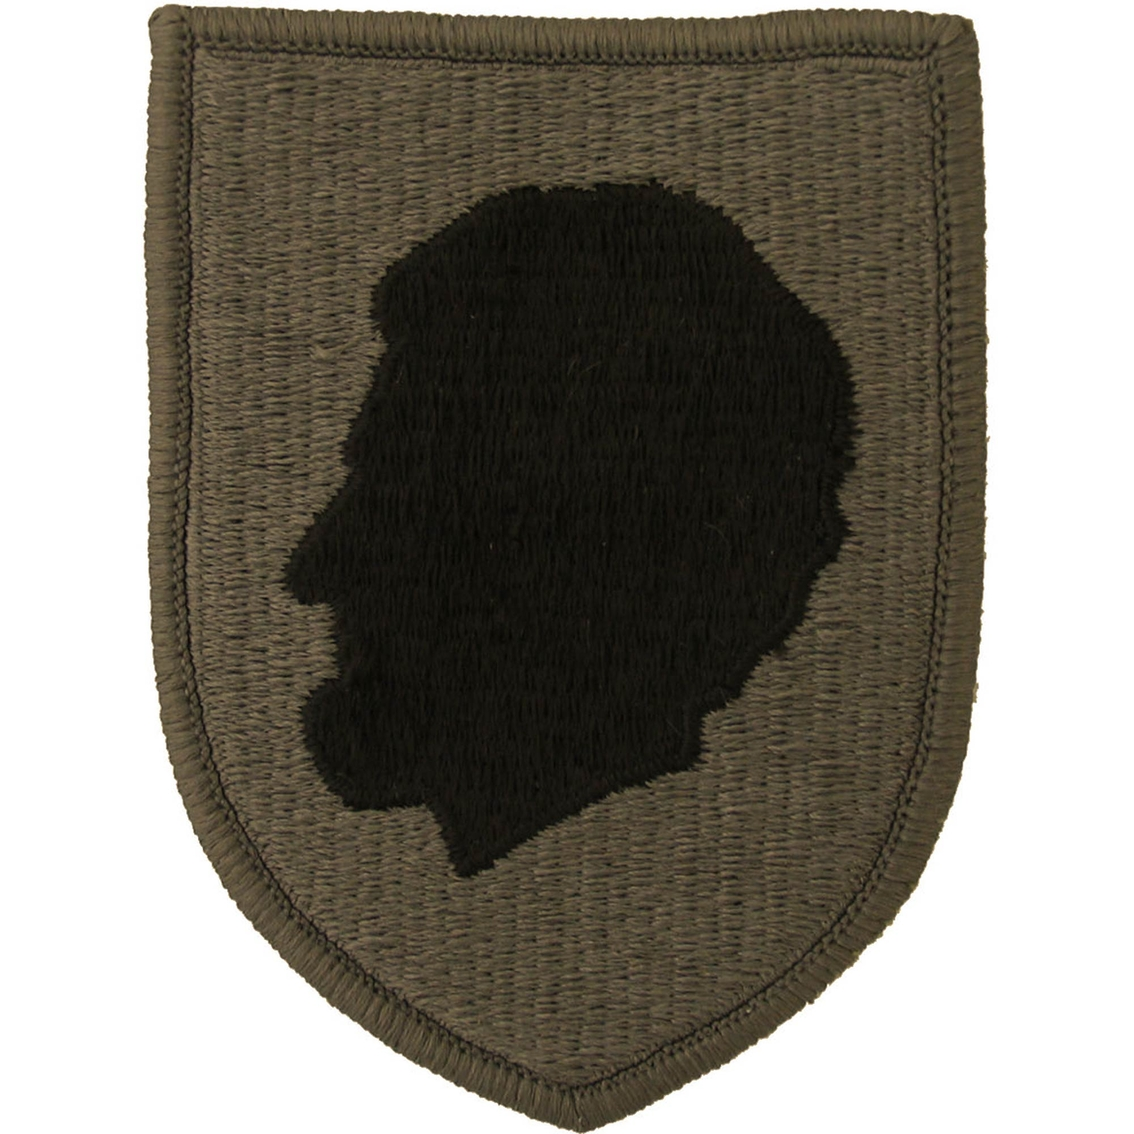 Army National Guard Patches History 1 - VetsHome